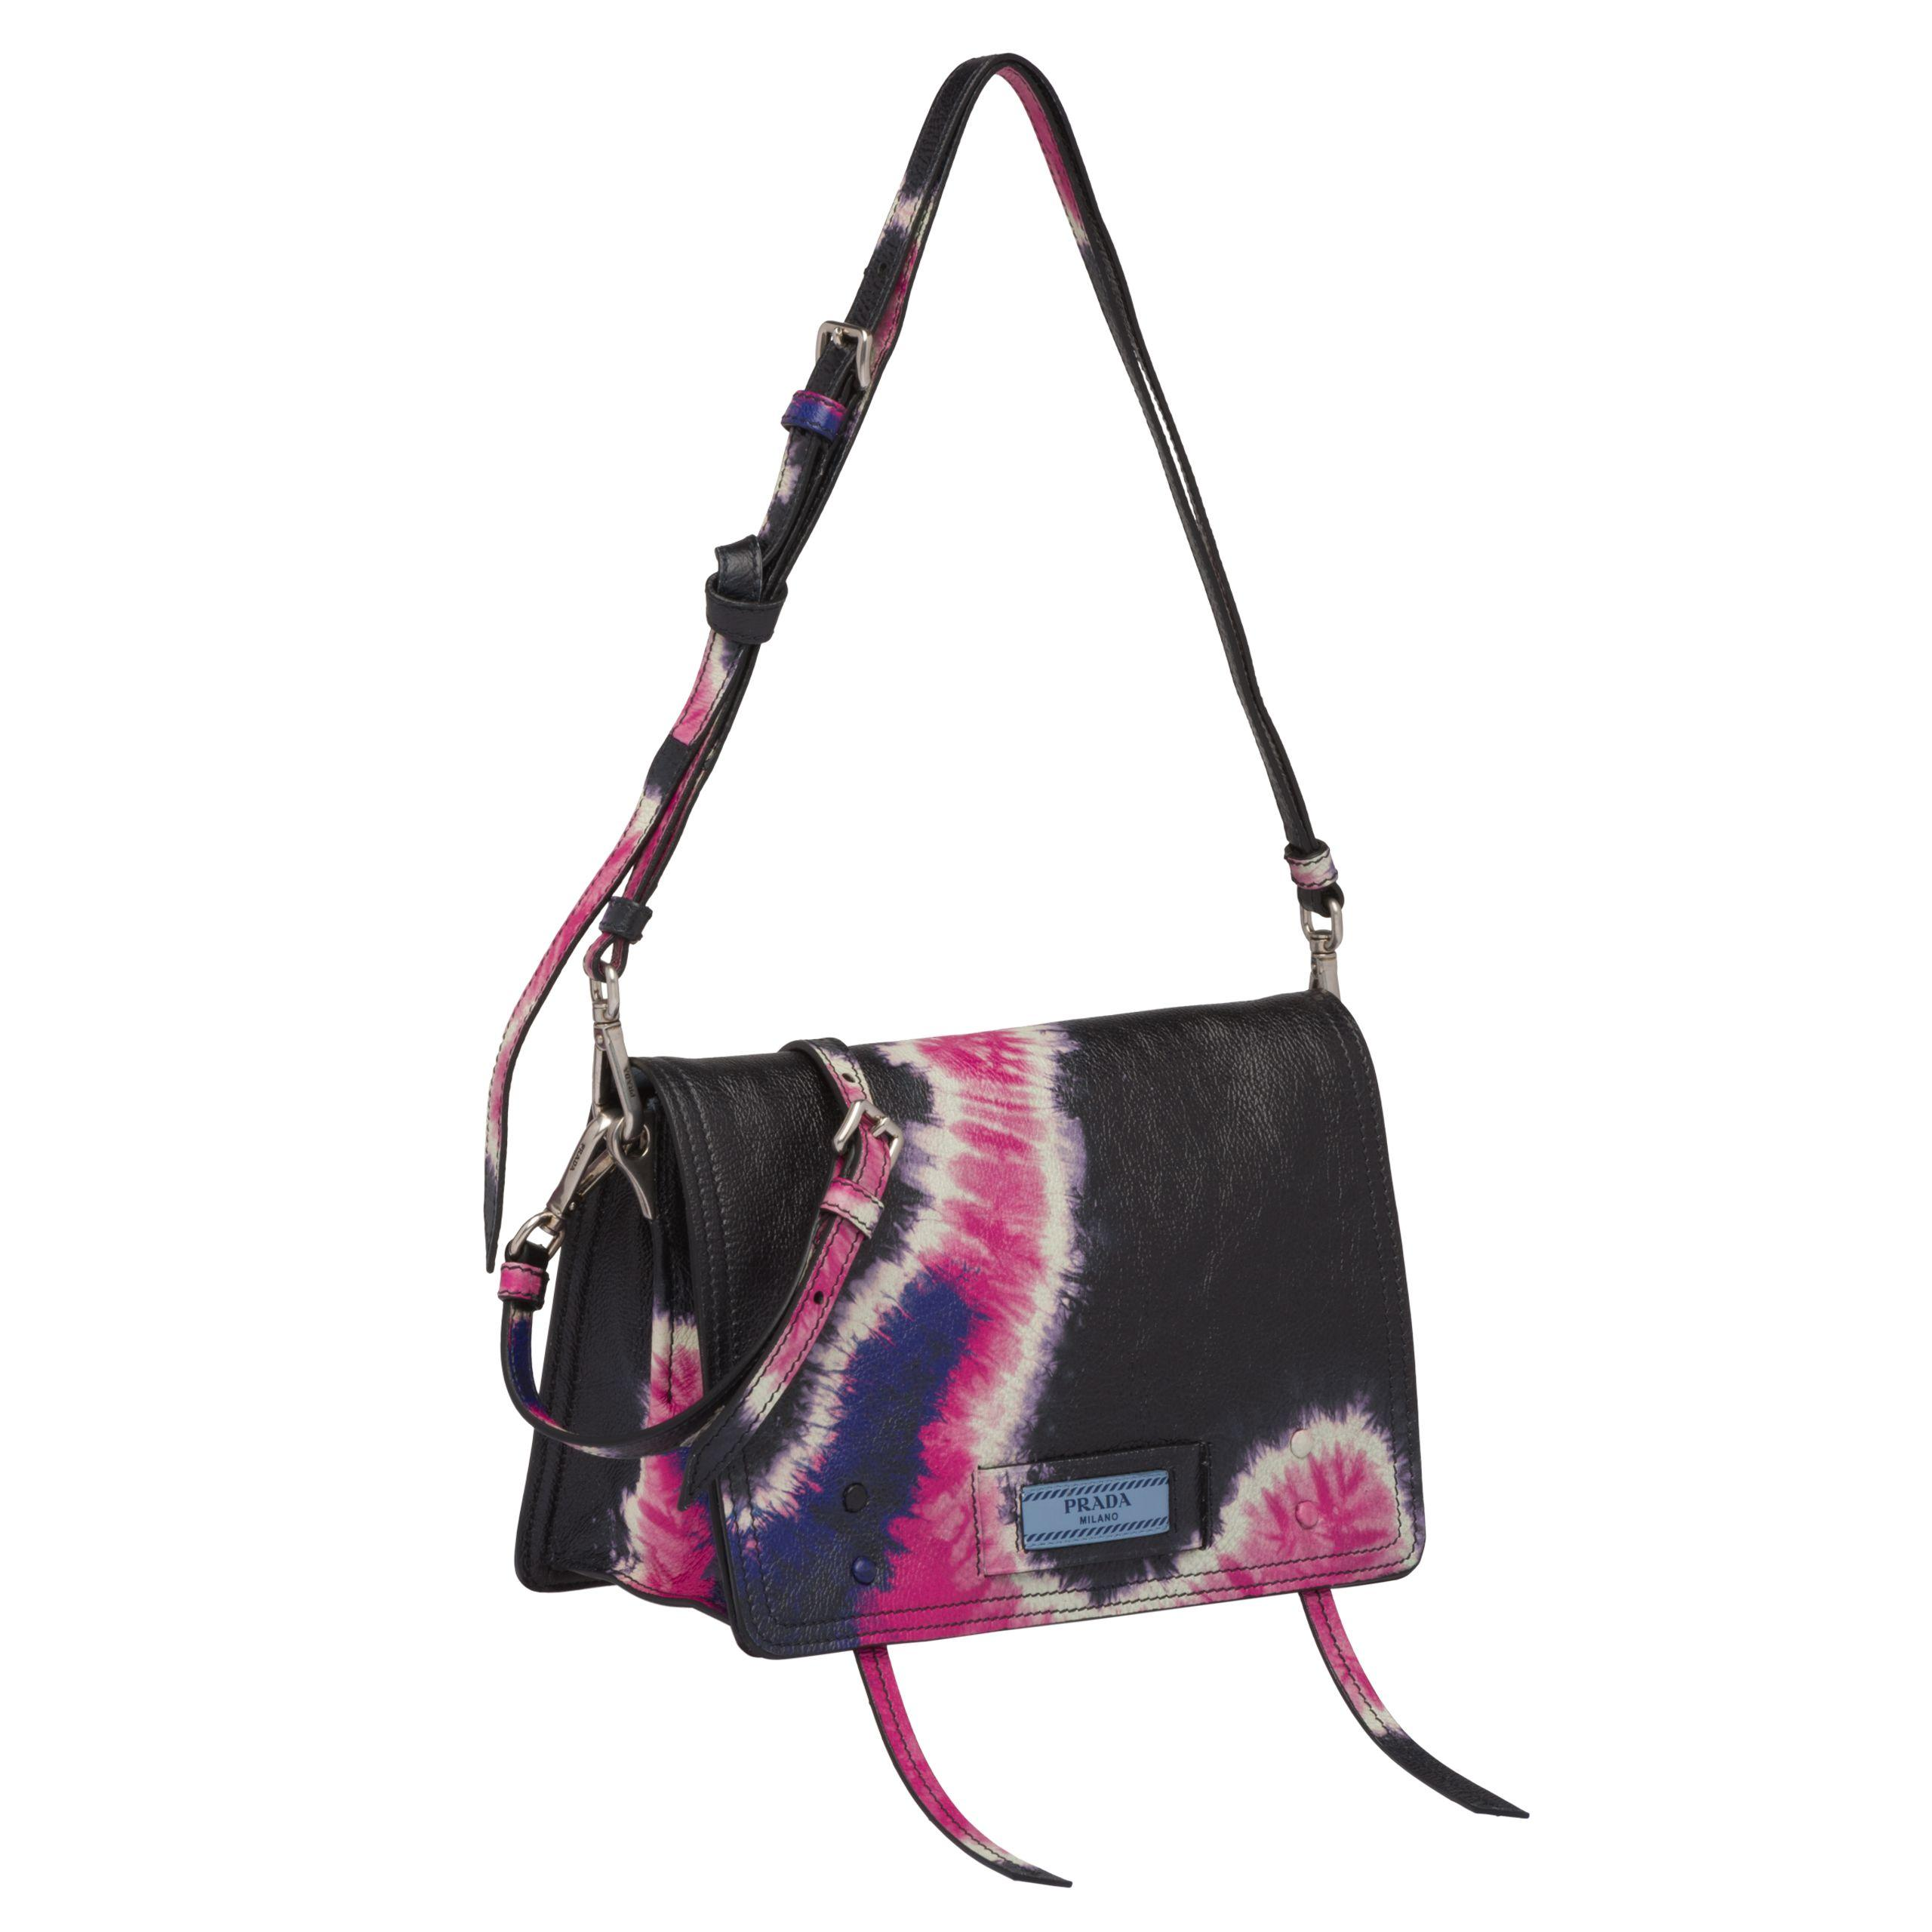 d09885037654 Prada - Multicolor Etiquette Printed Leather Bag - Lyst. View fullscreen